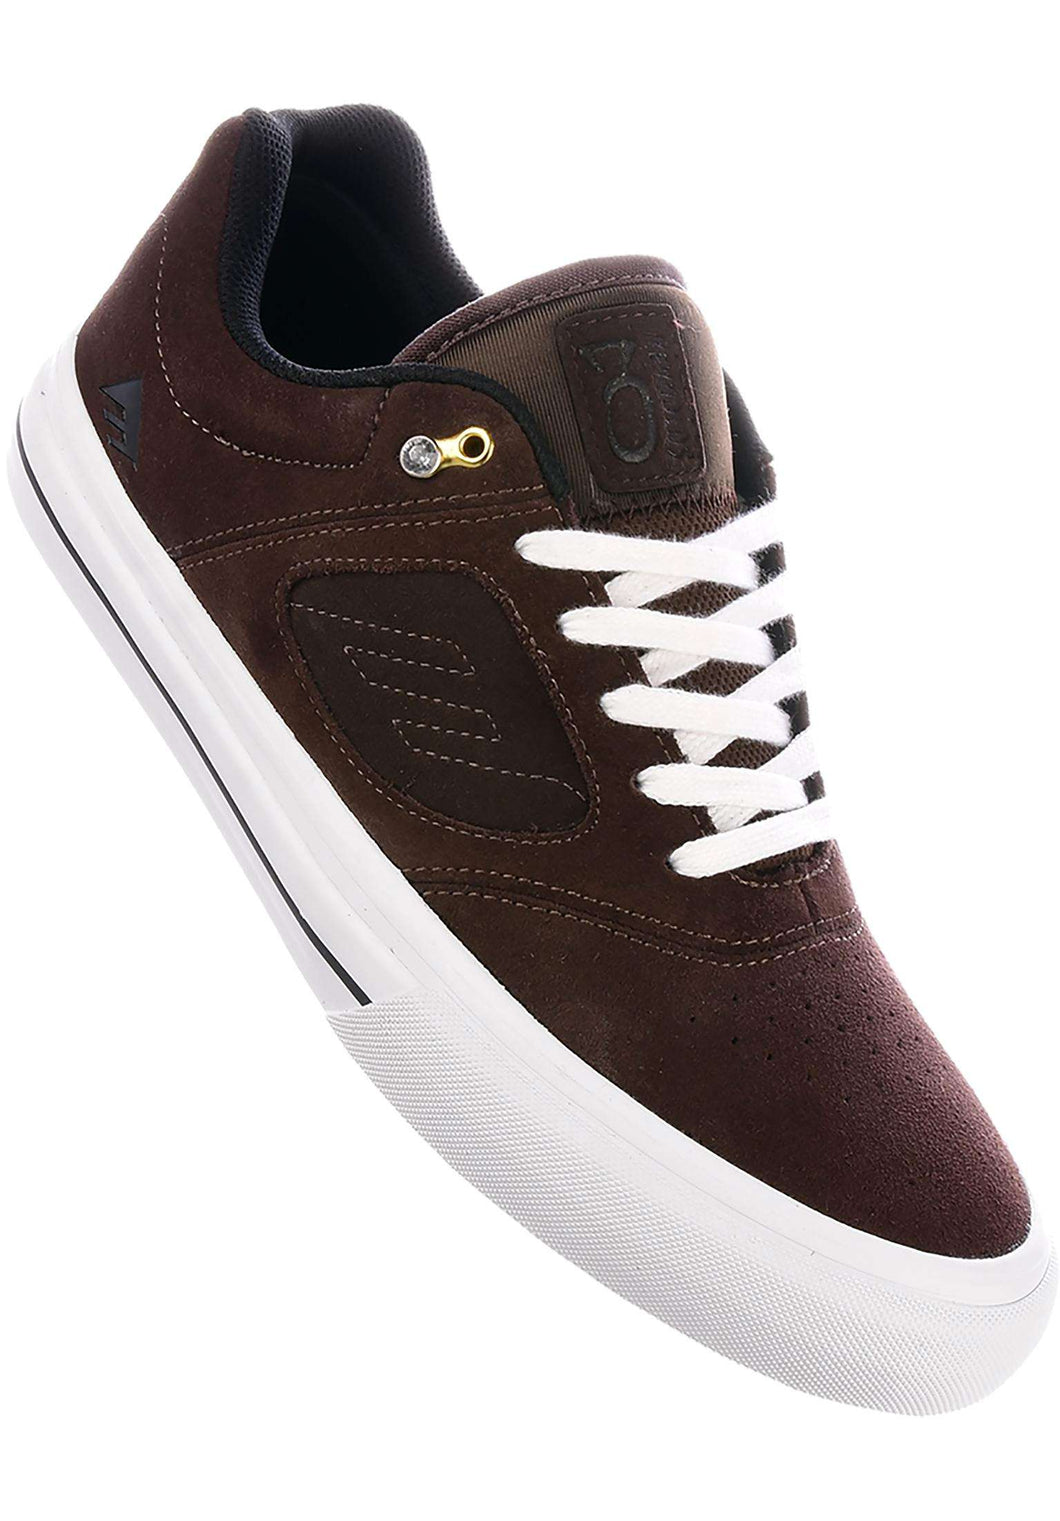 EMERICA SHOE REYNOLDS 3 G6 VULC BROWN/WHITE